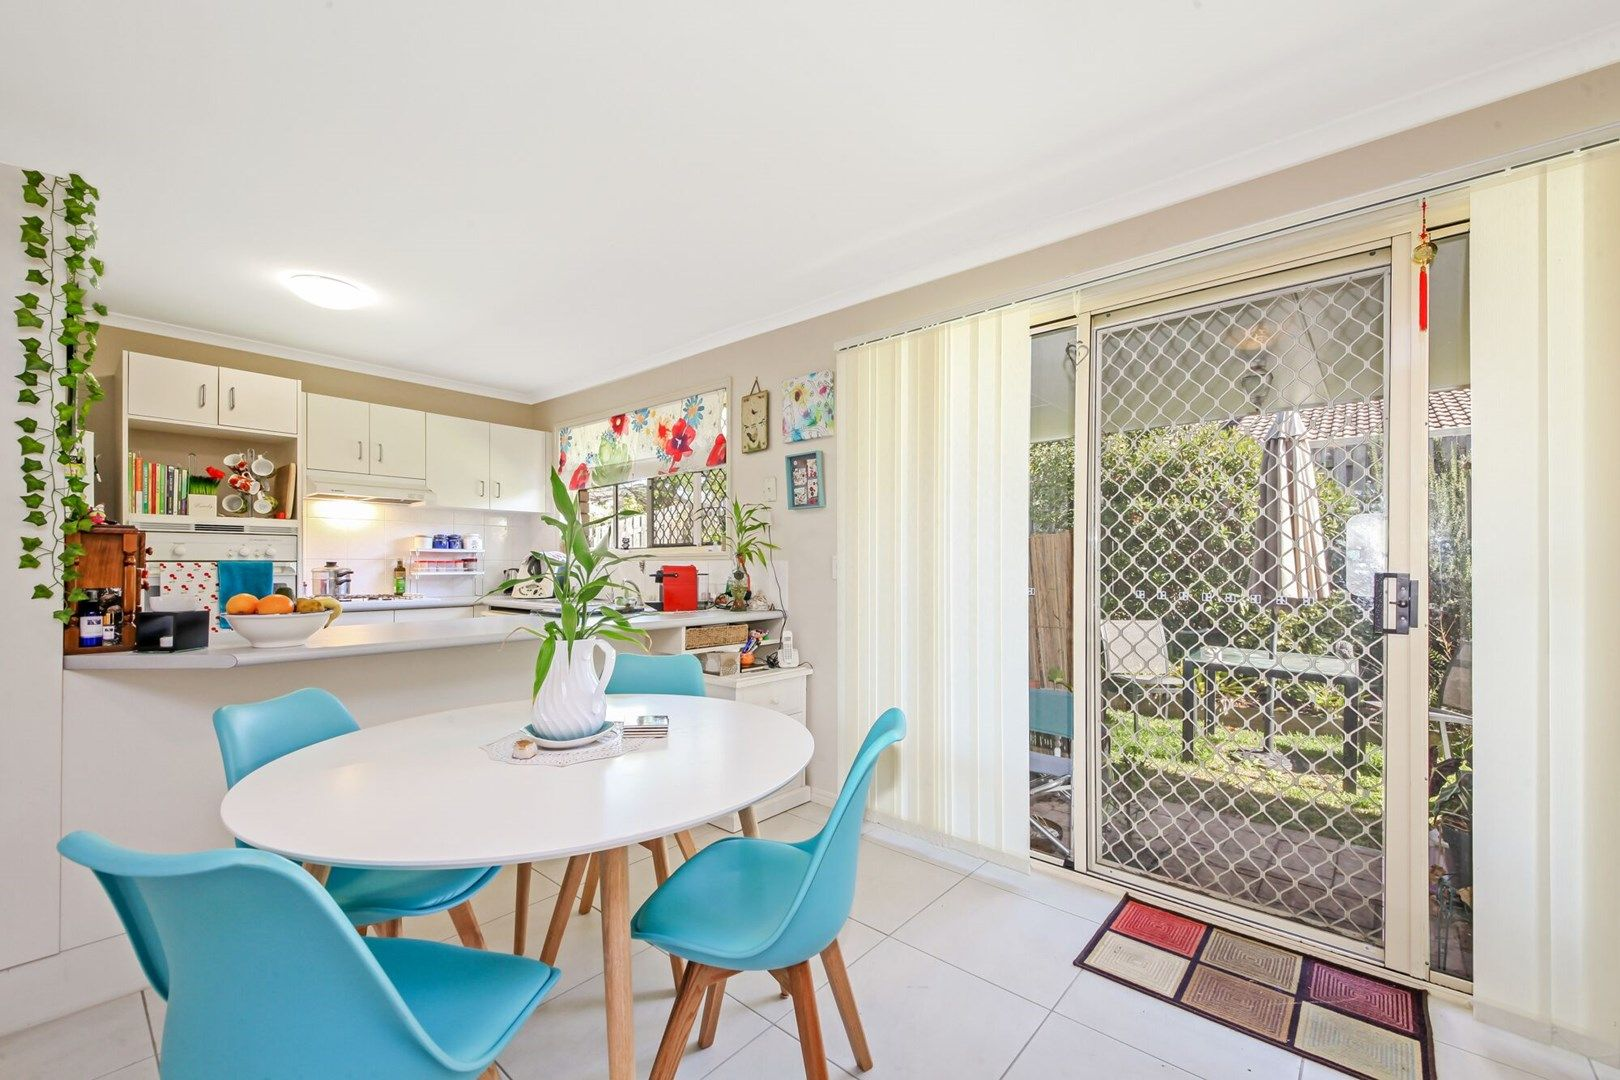 41/18 Spano Street, Zillmere QLD 4034, Image 1